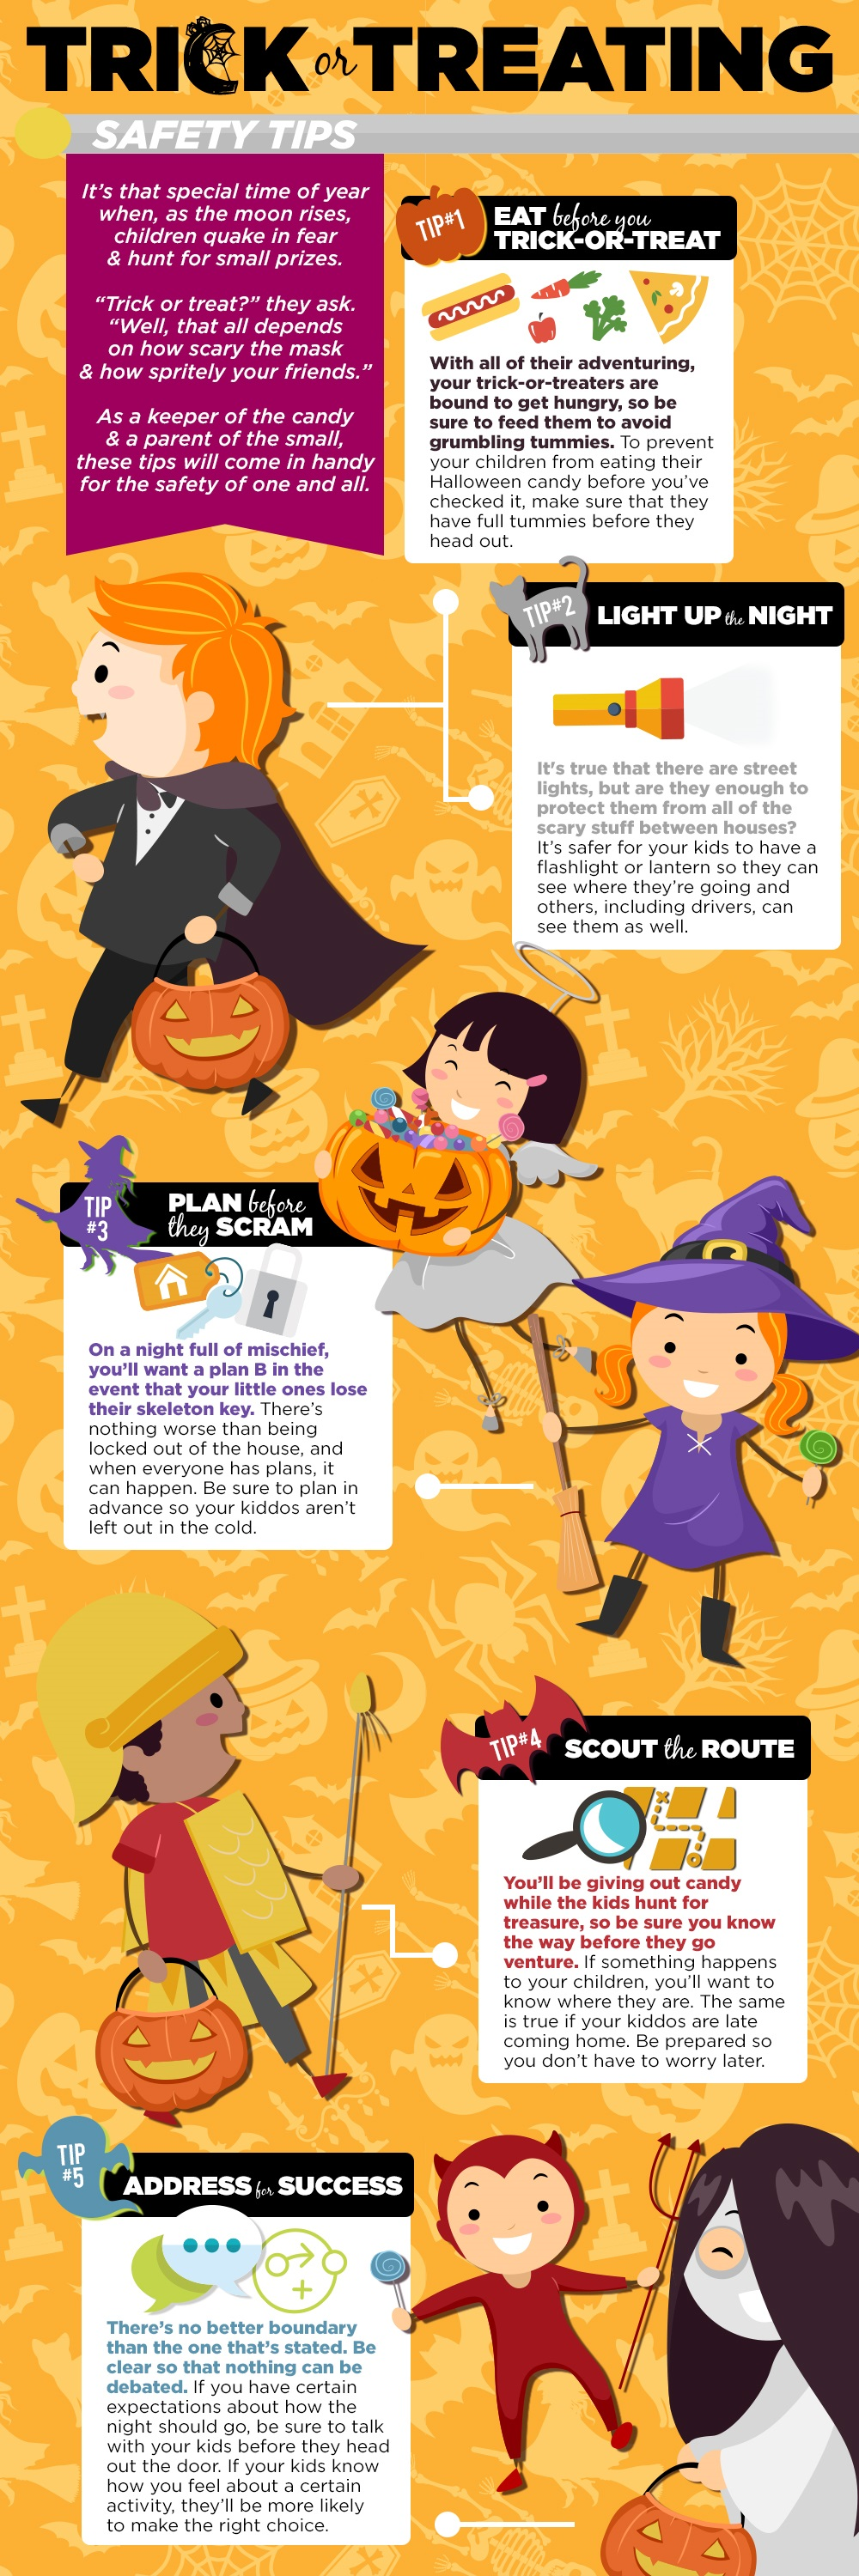 Trick-or-Treating-Safety-Tips1